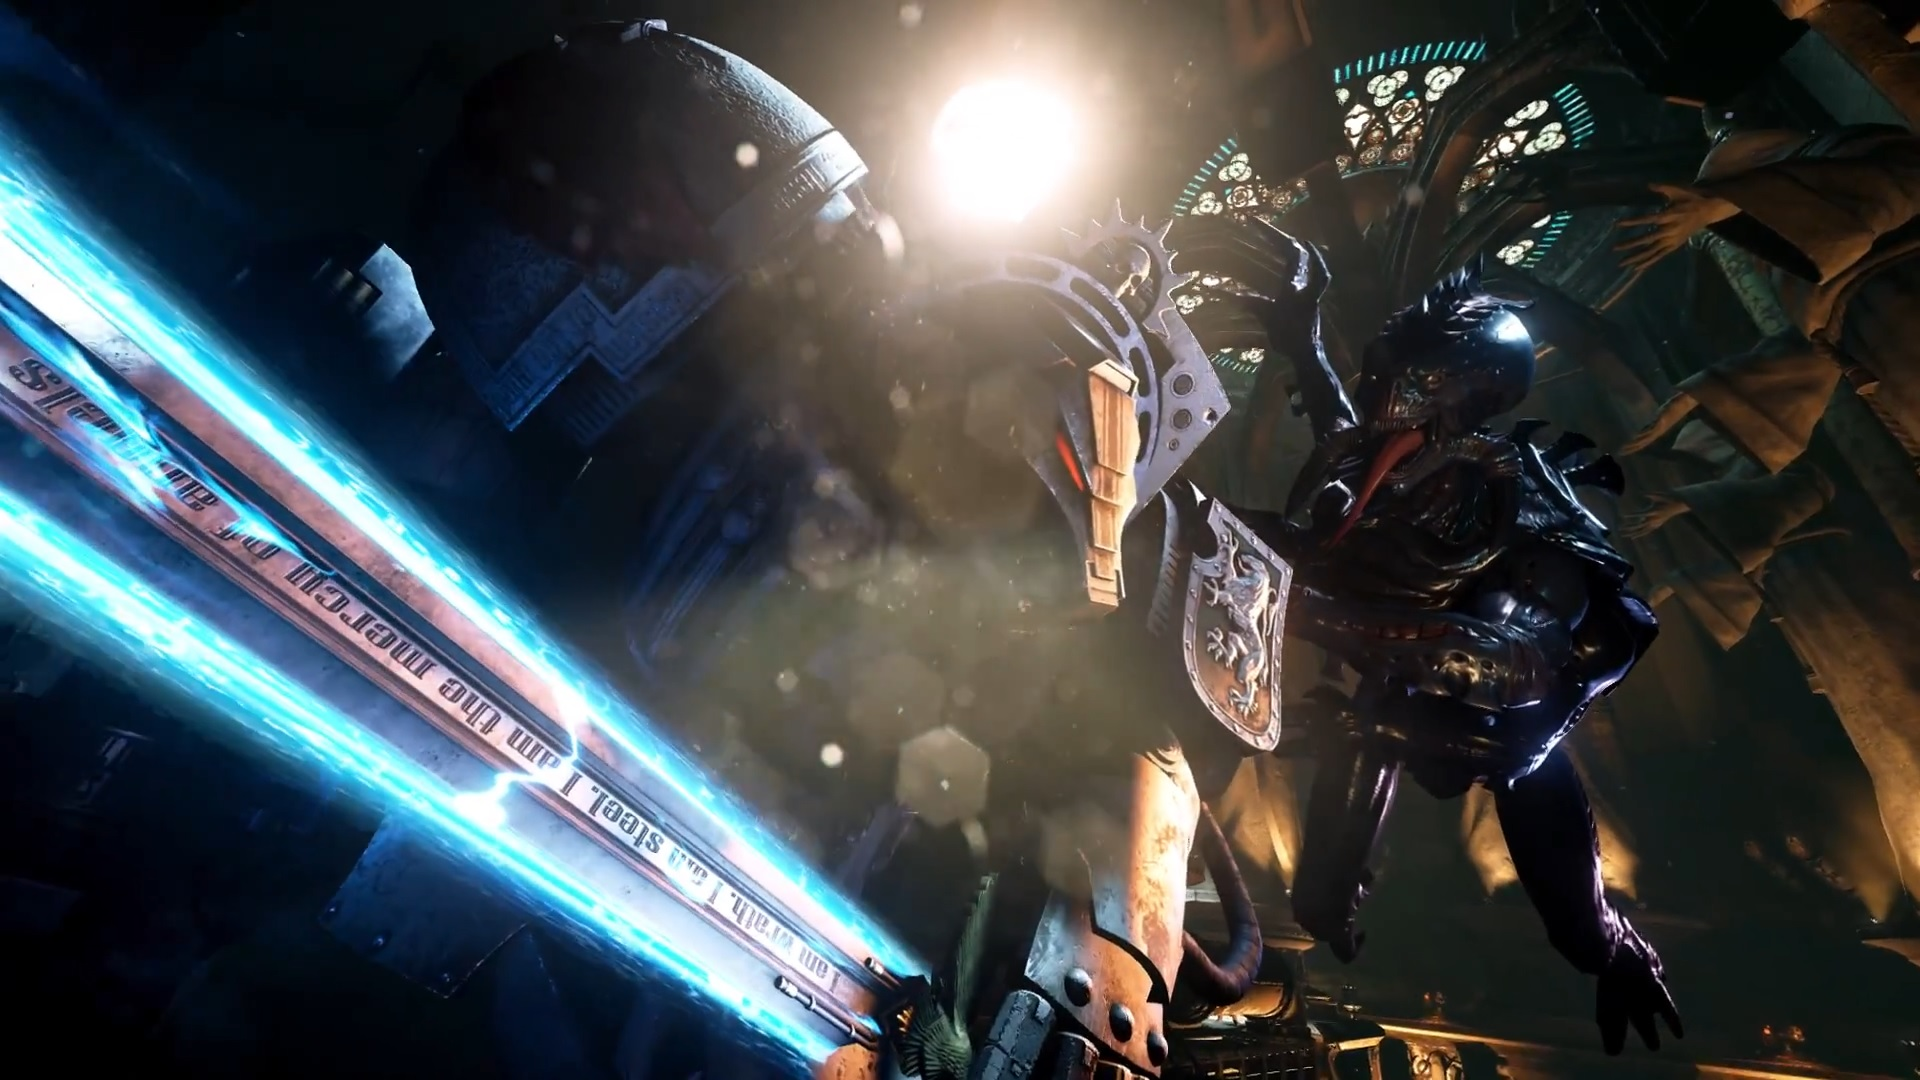 Space Hulk: Deathwing Screenshots Image #5901 - XboxOne-HQ COM